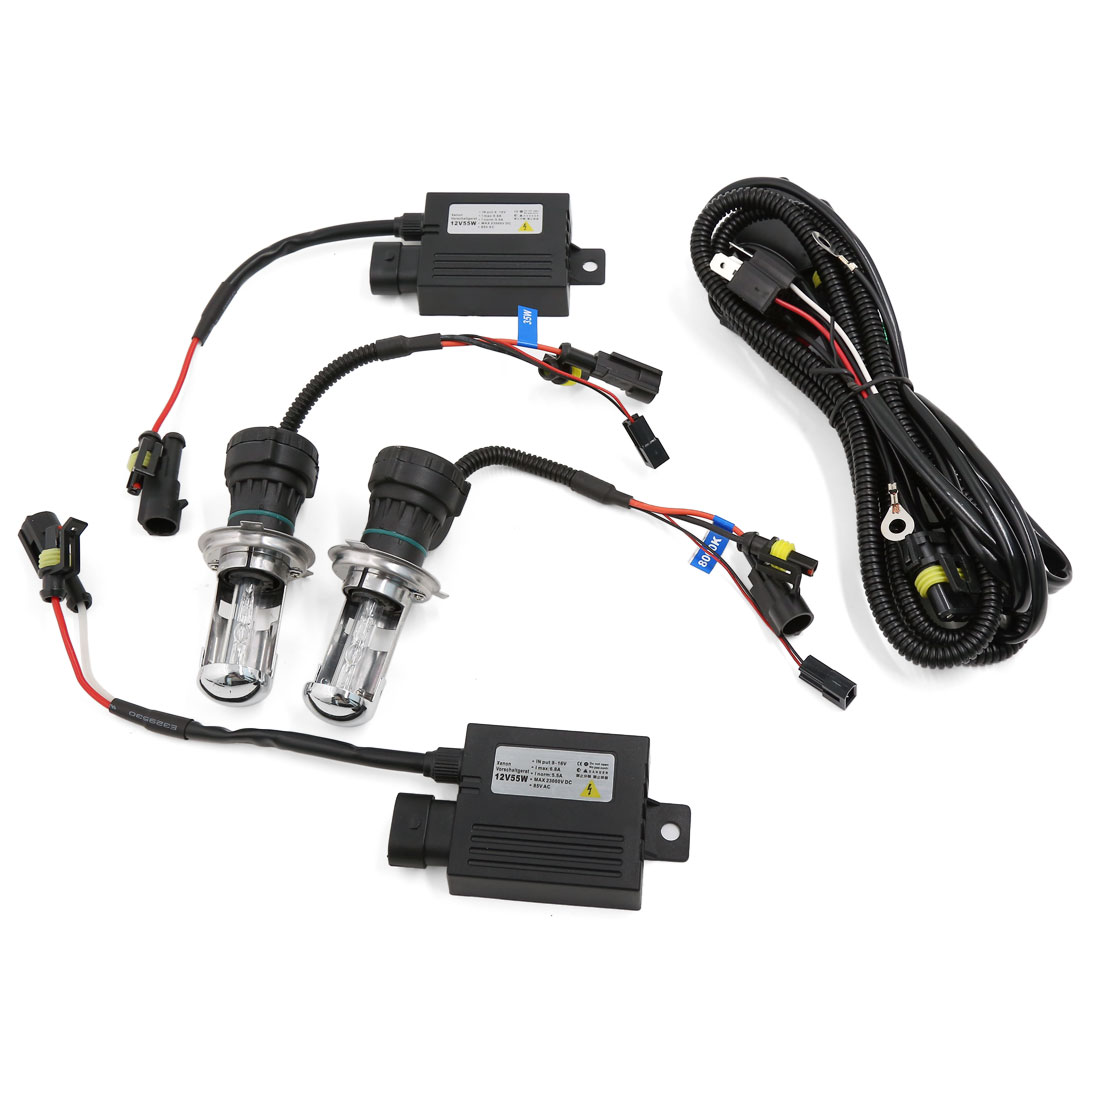 Auto Car H4 Xenon Light Hi-Lo Bi-Xenon 55W HID Slim Conversion Kit DC 12V 6000K